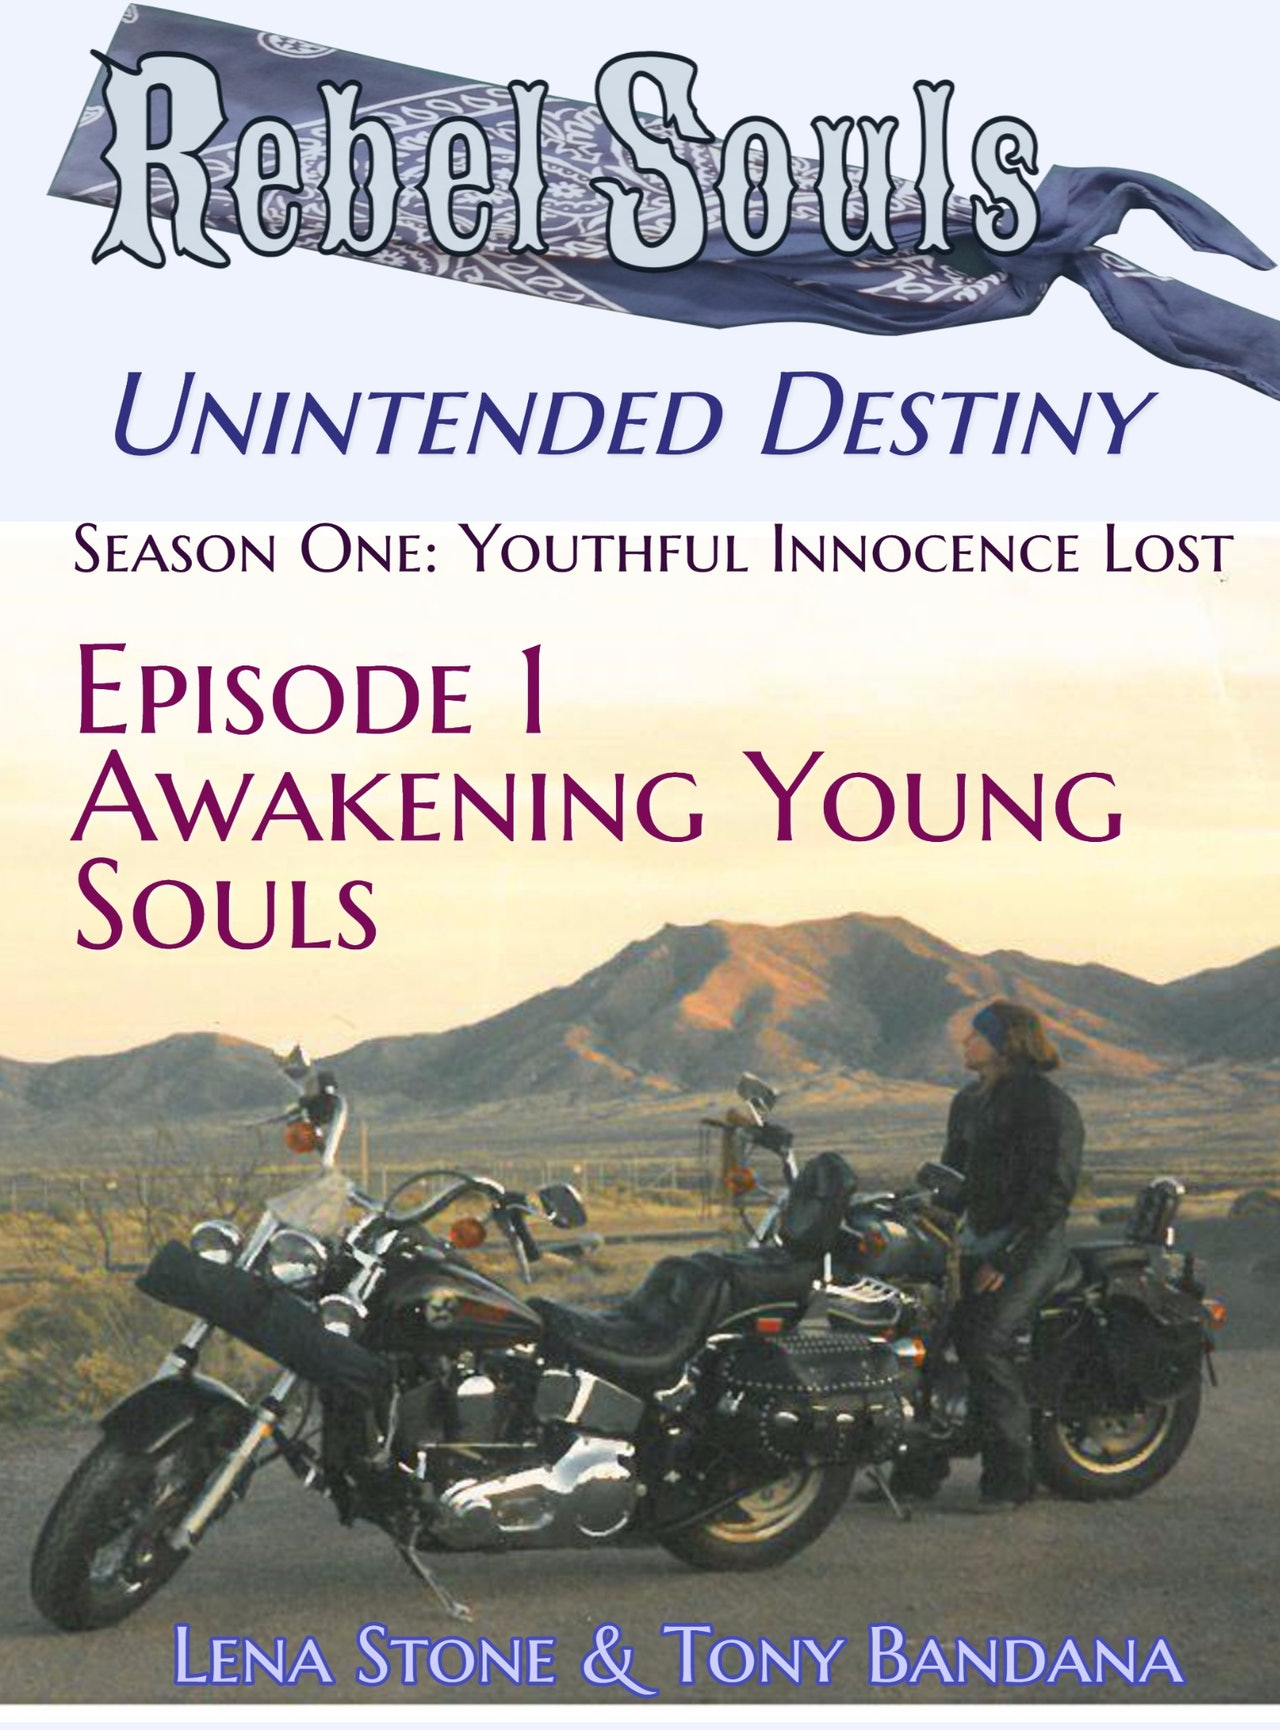 Season One - Episode 01 - Awakening Young Souls